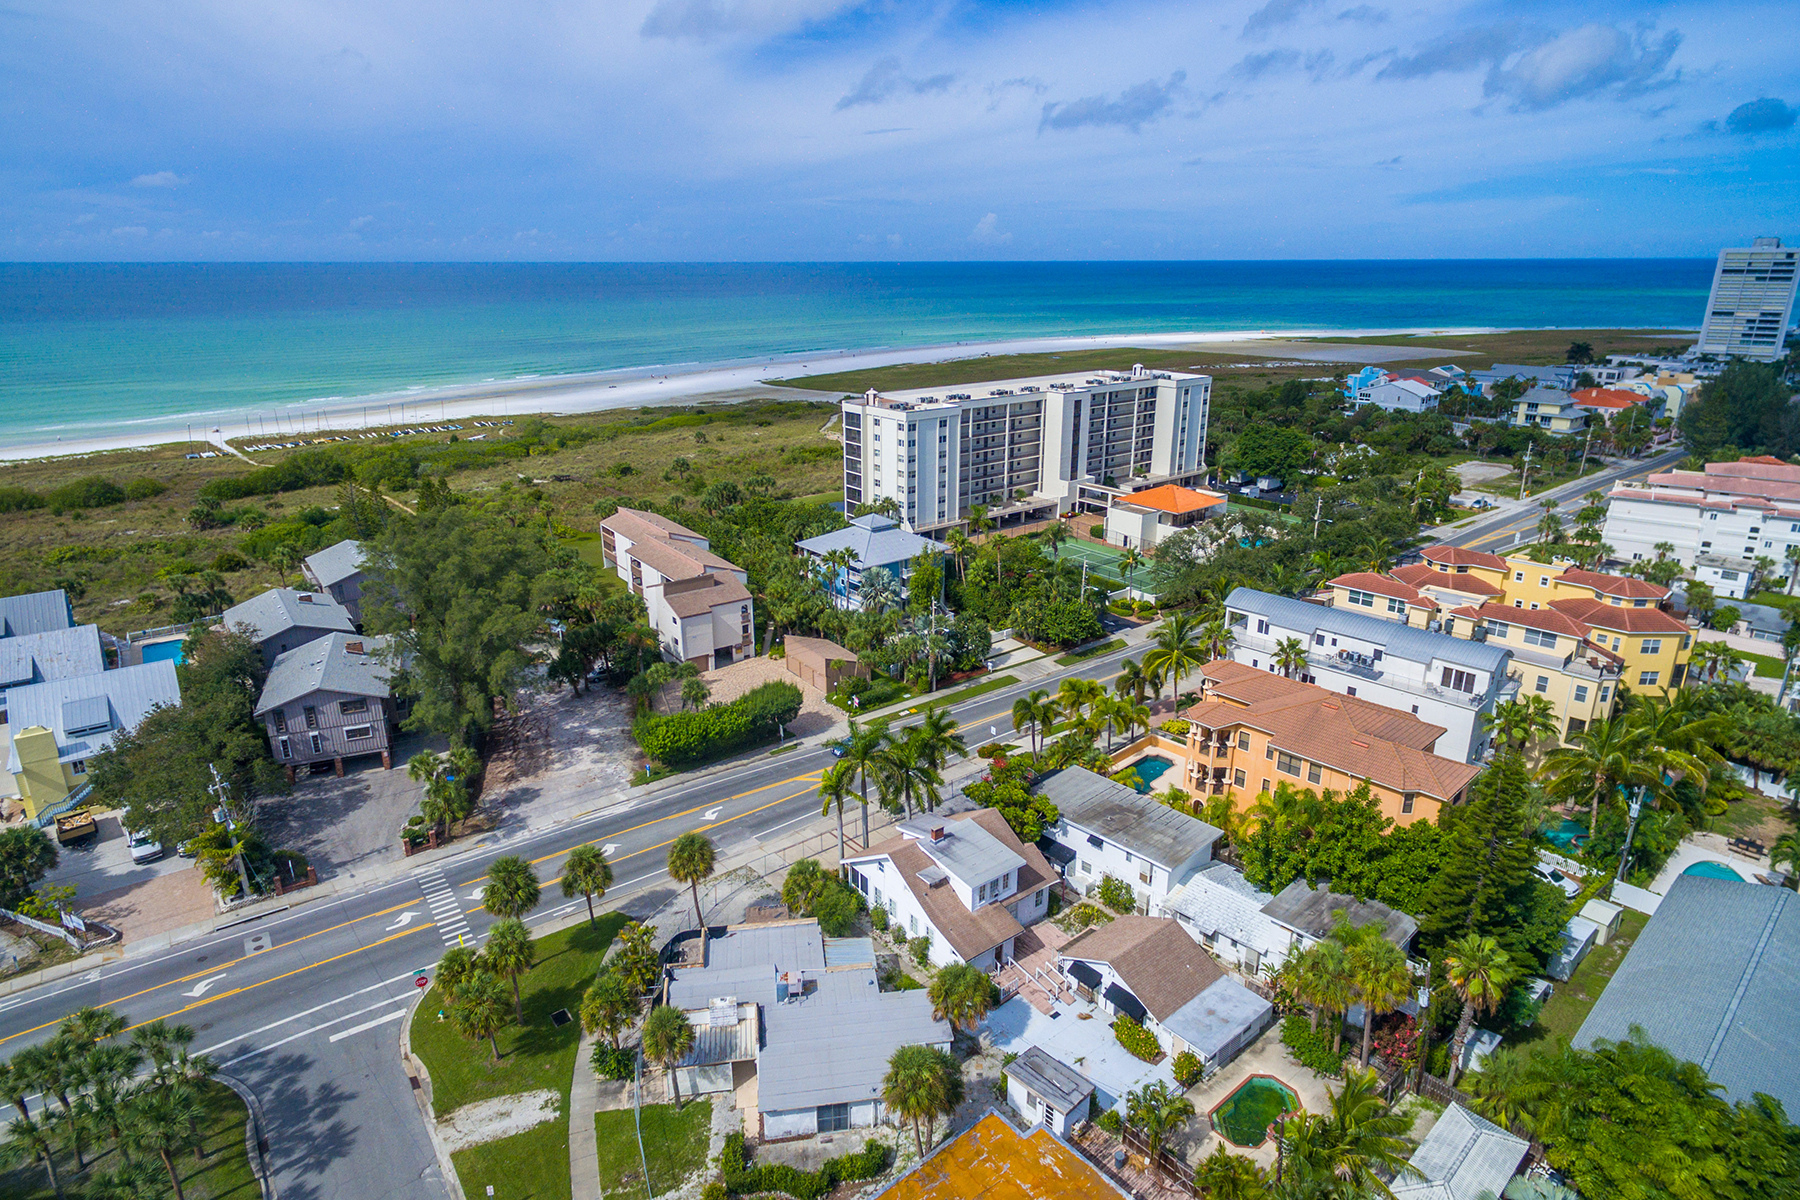 Land for Sale at SIESTA BEACH 459 Beach Rd 15 Sarasota, Florida, 34242 United States